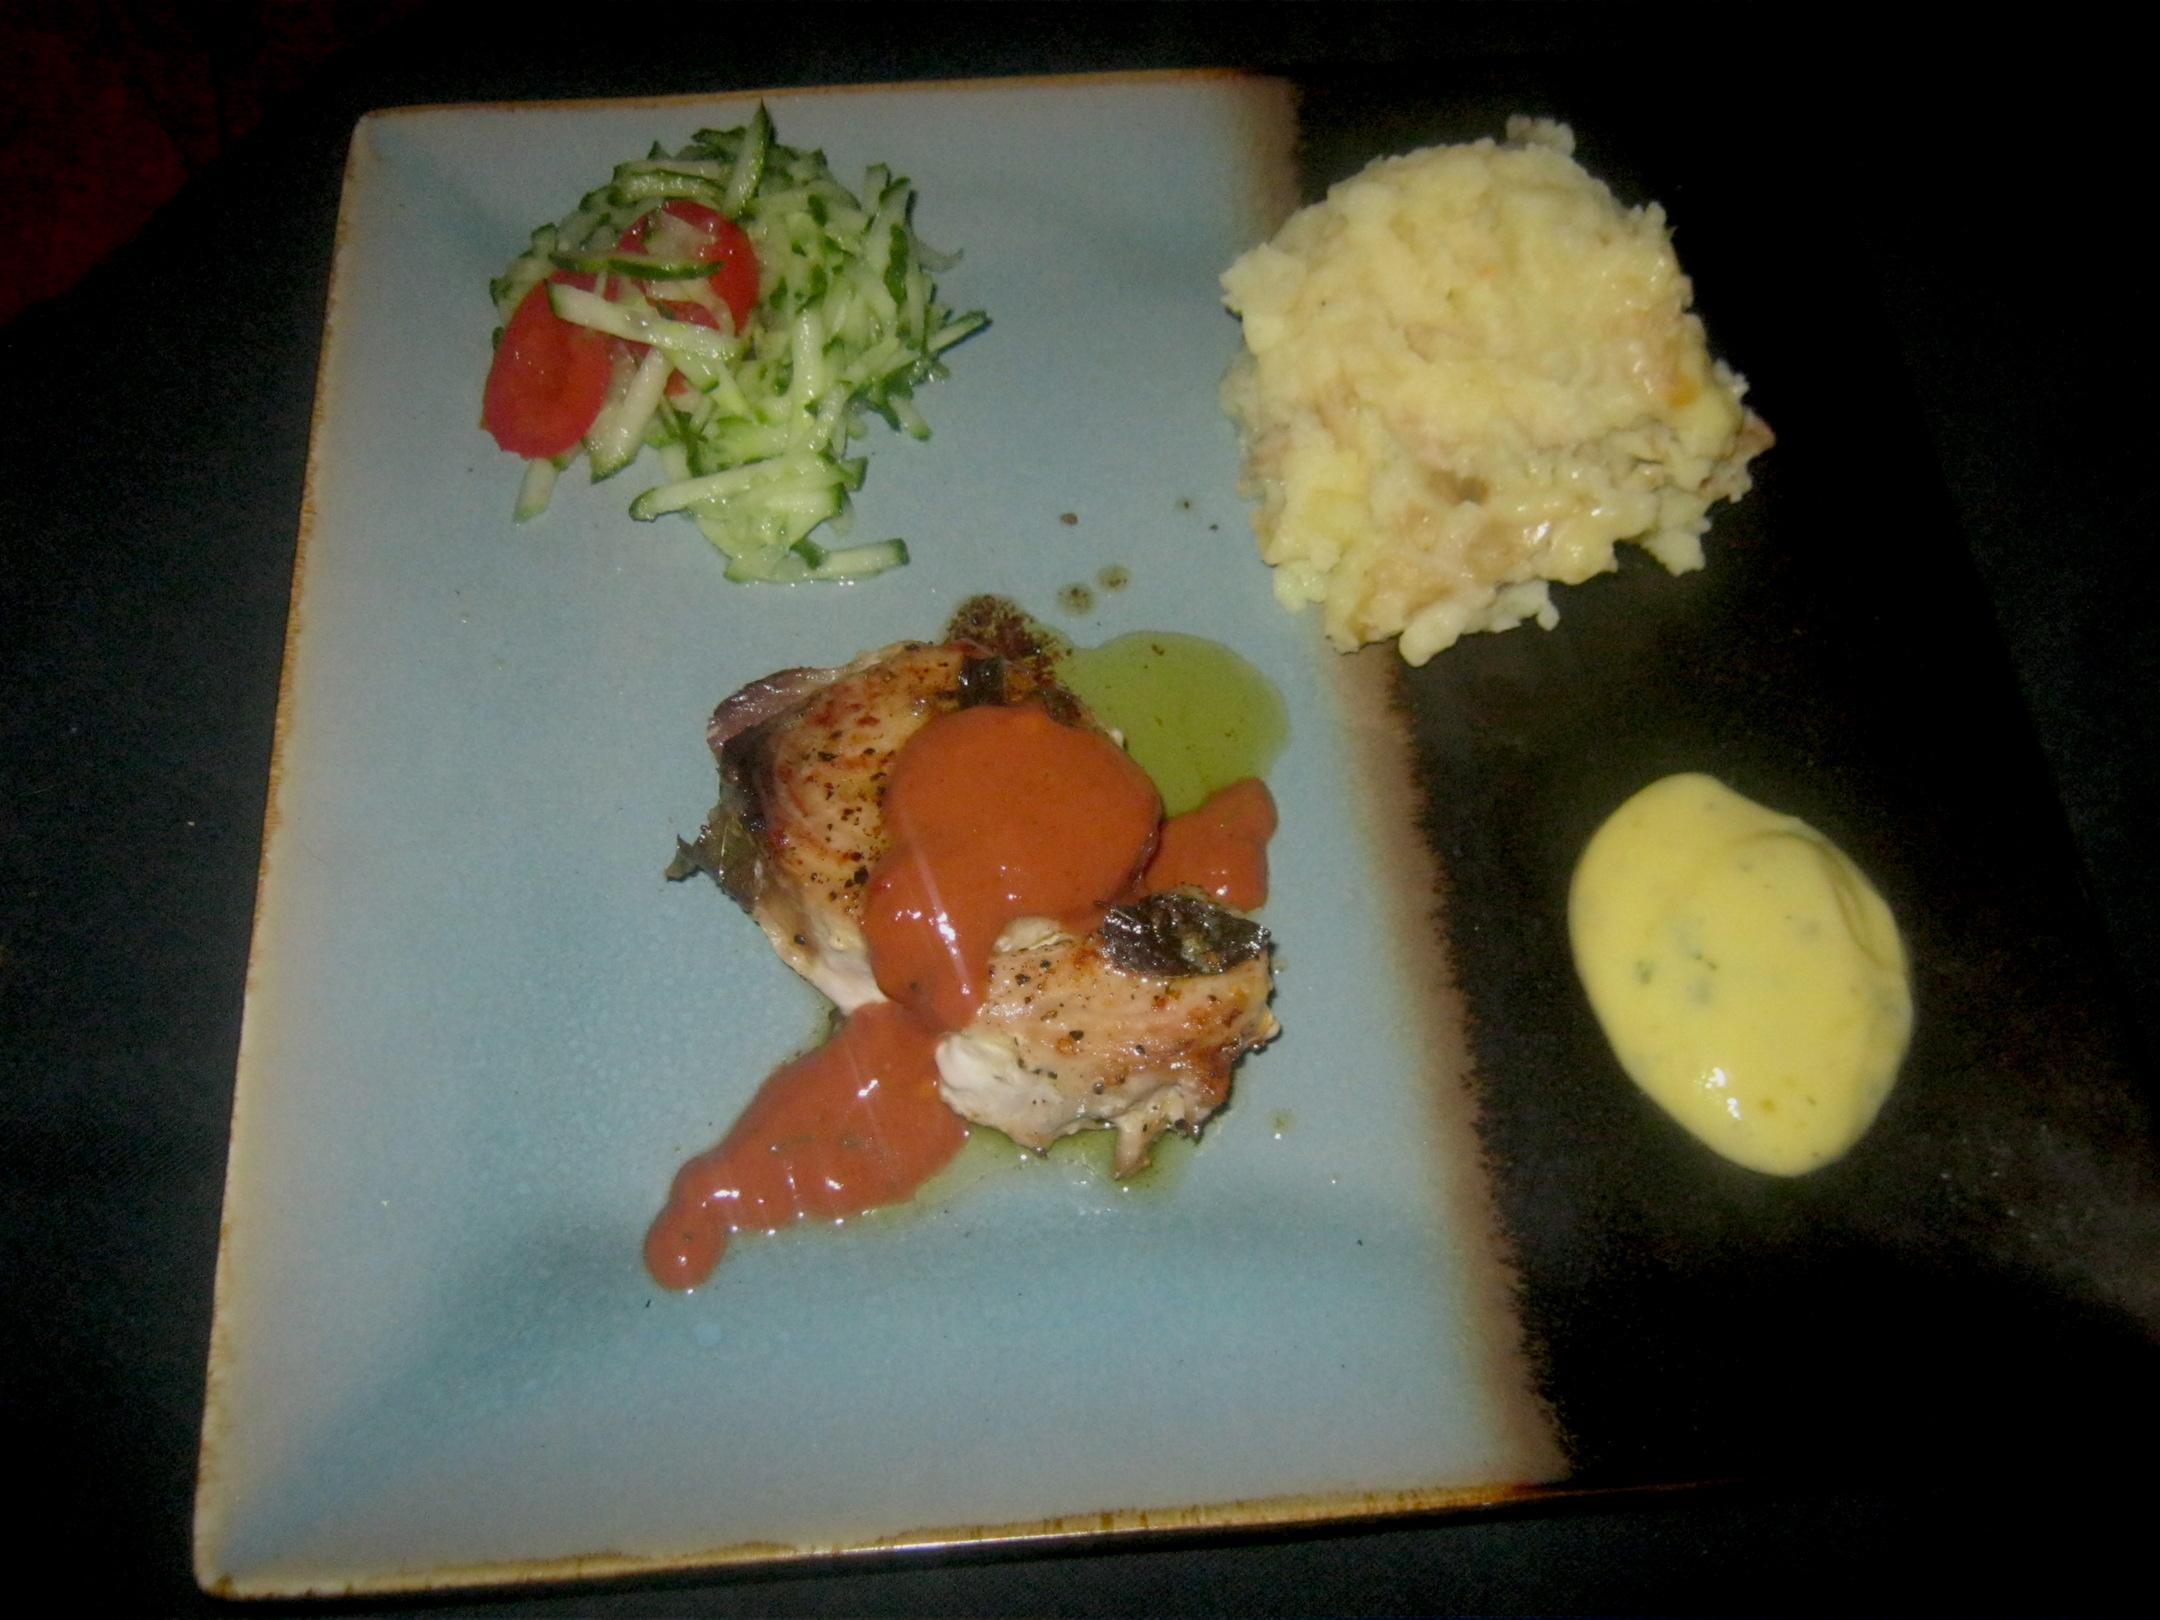 Pan fried marlin steaks are full of healthy benefits